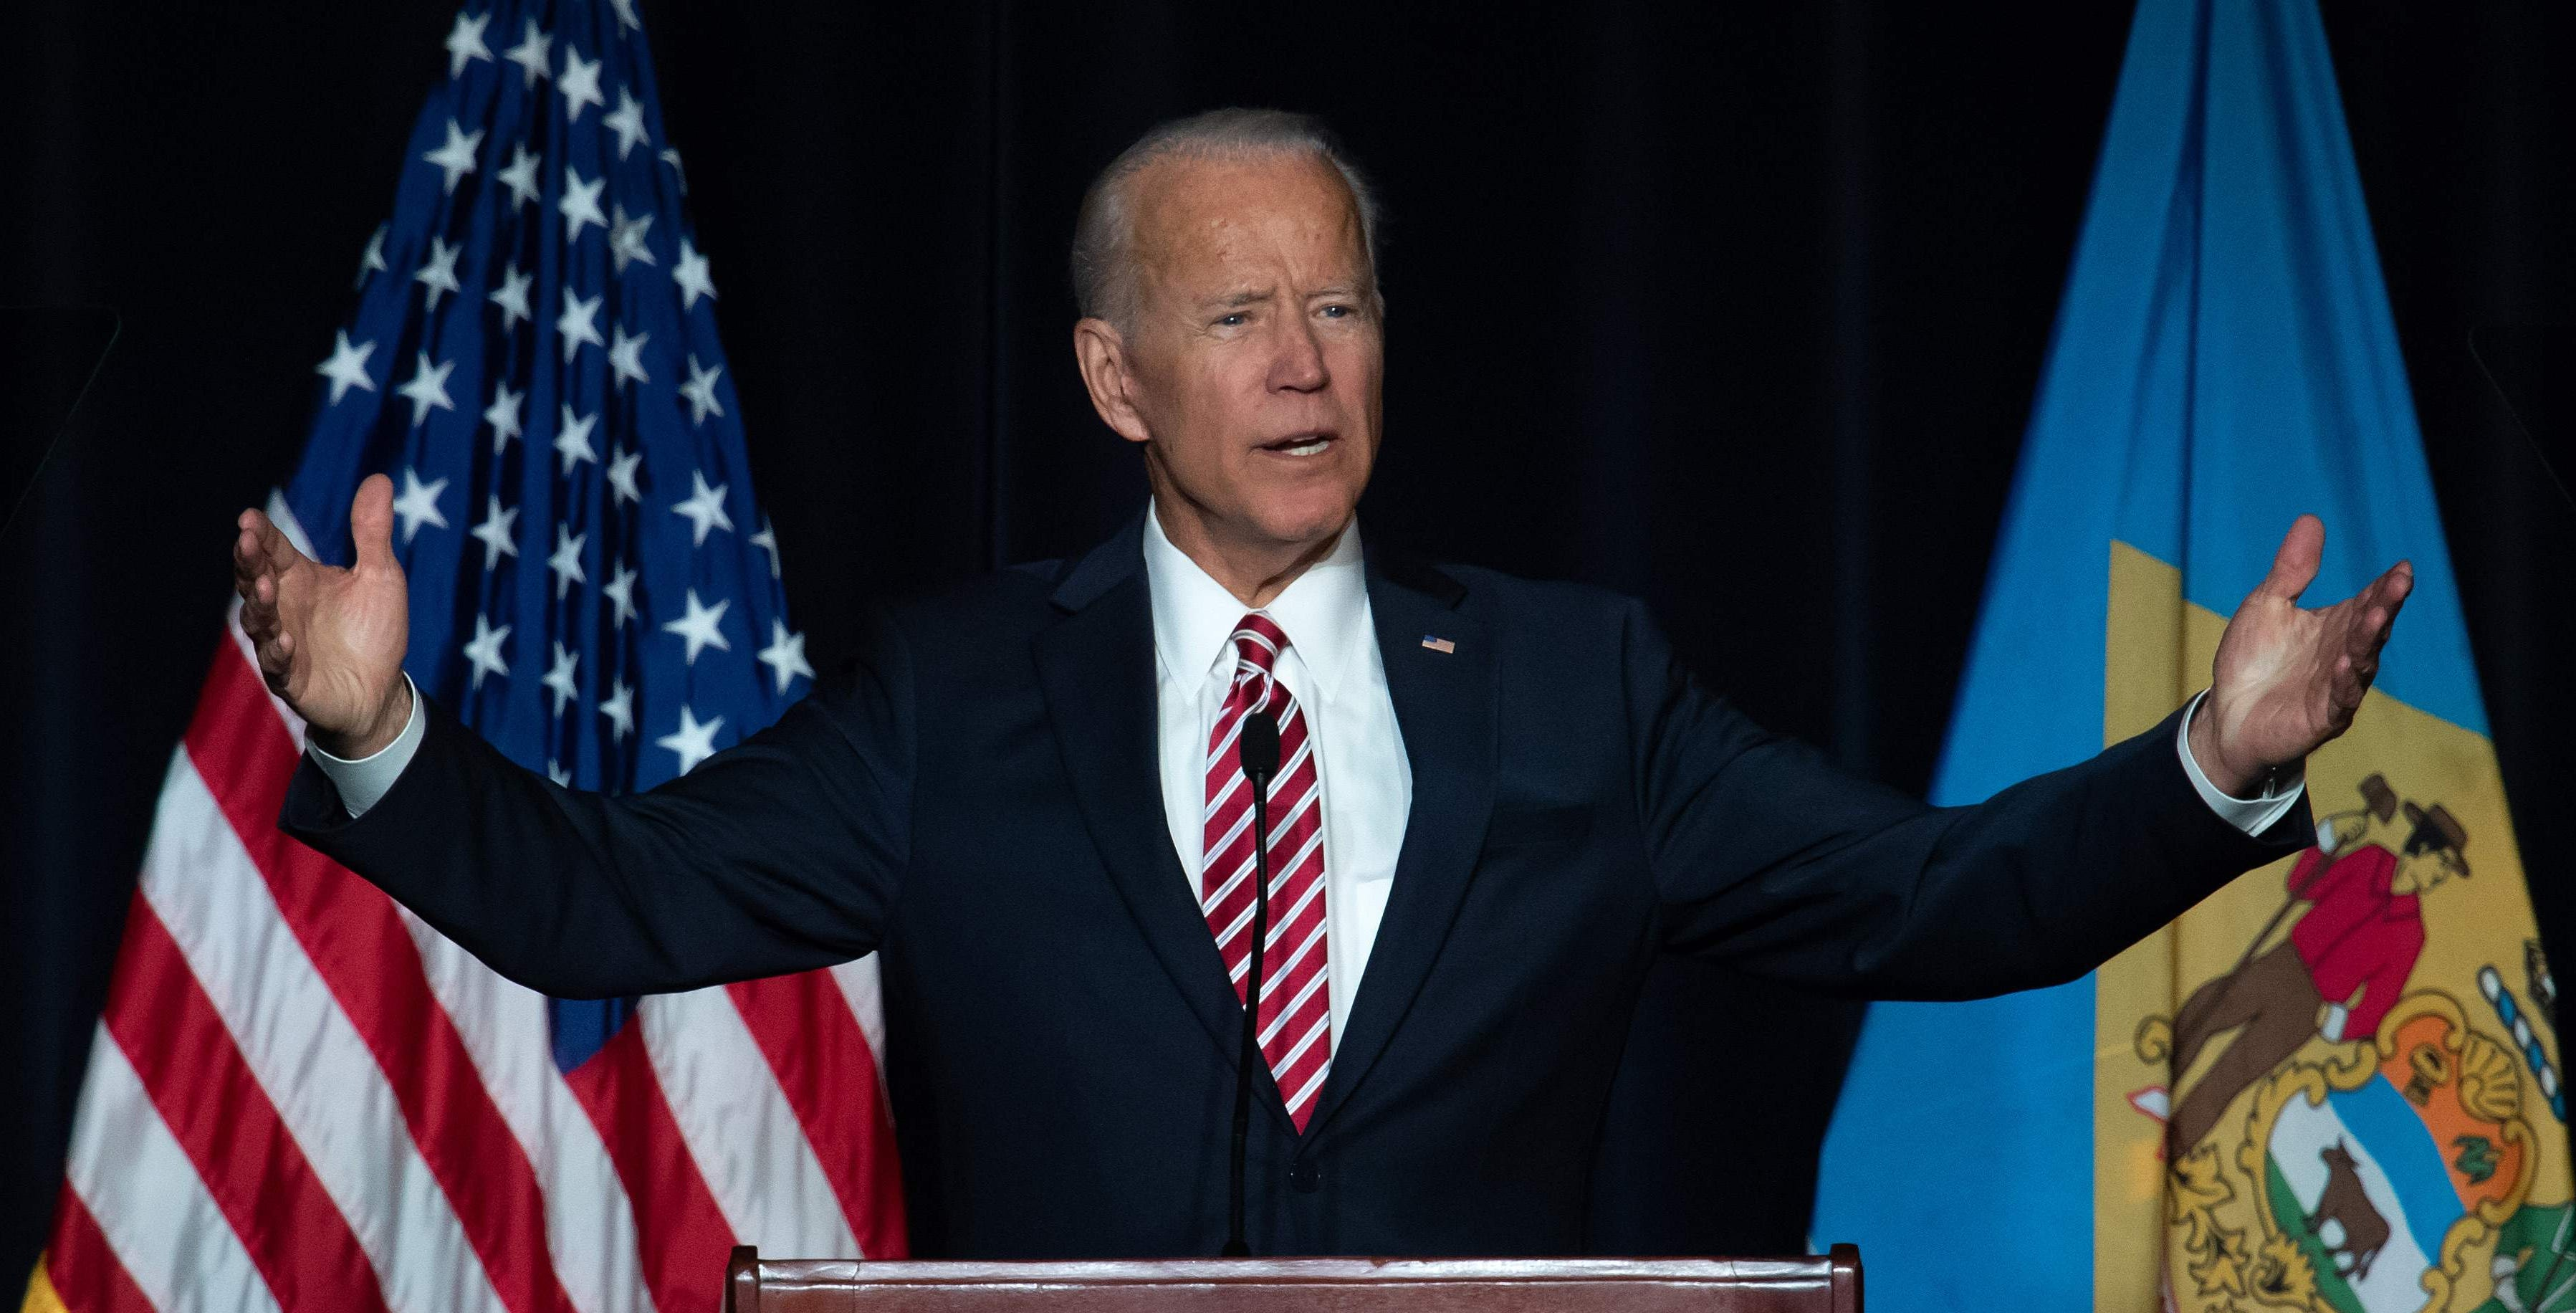 Former Vice President Joe Biden hasn't entered the race, but he has a strong polling lead.